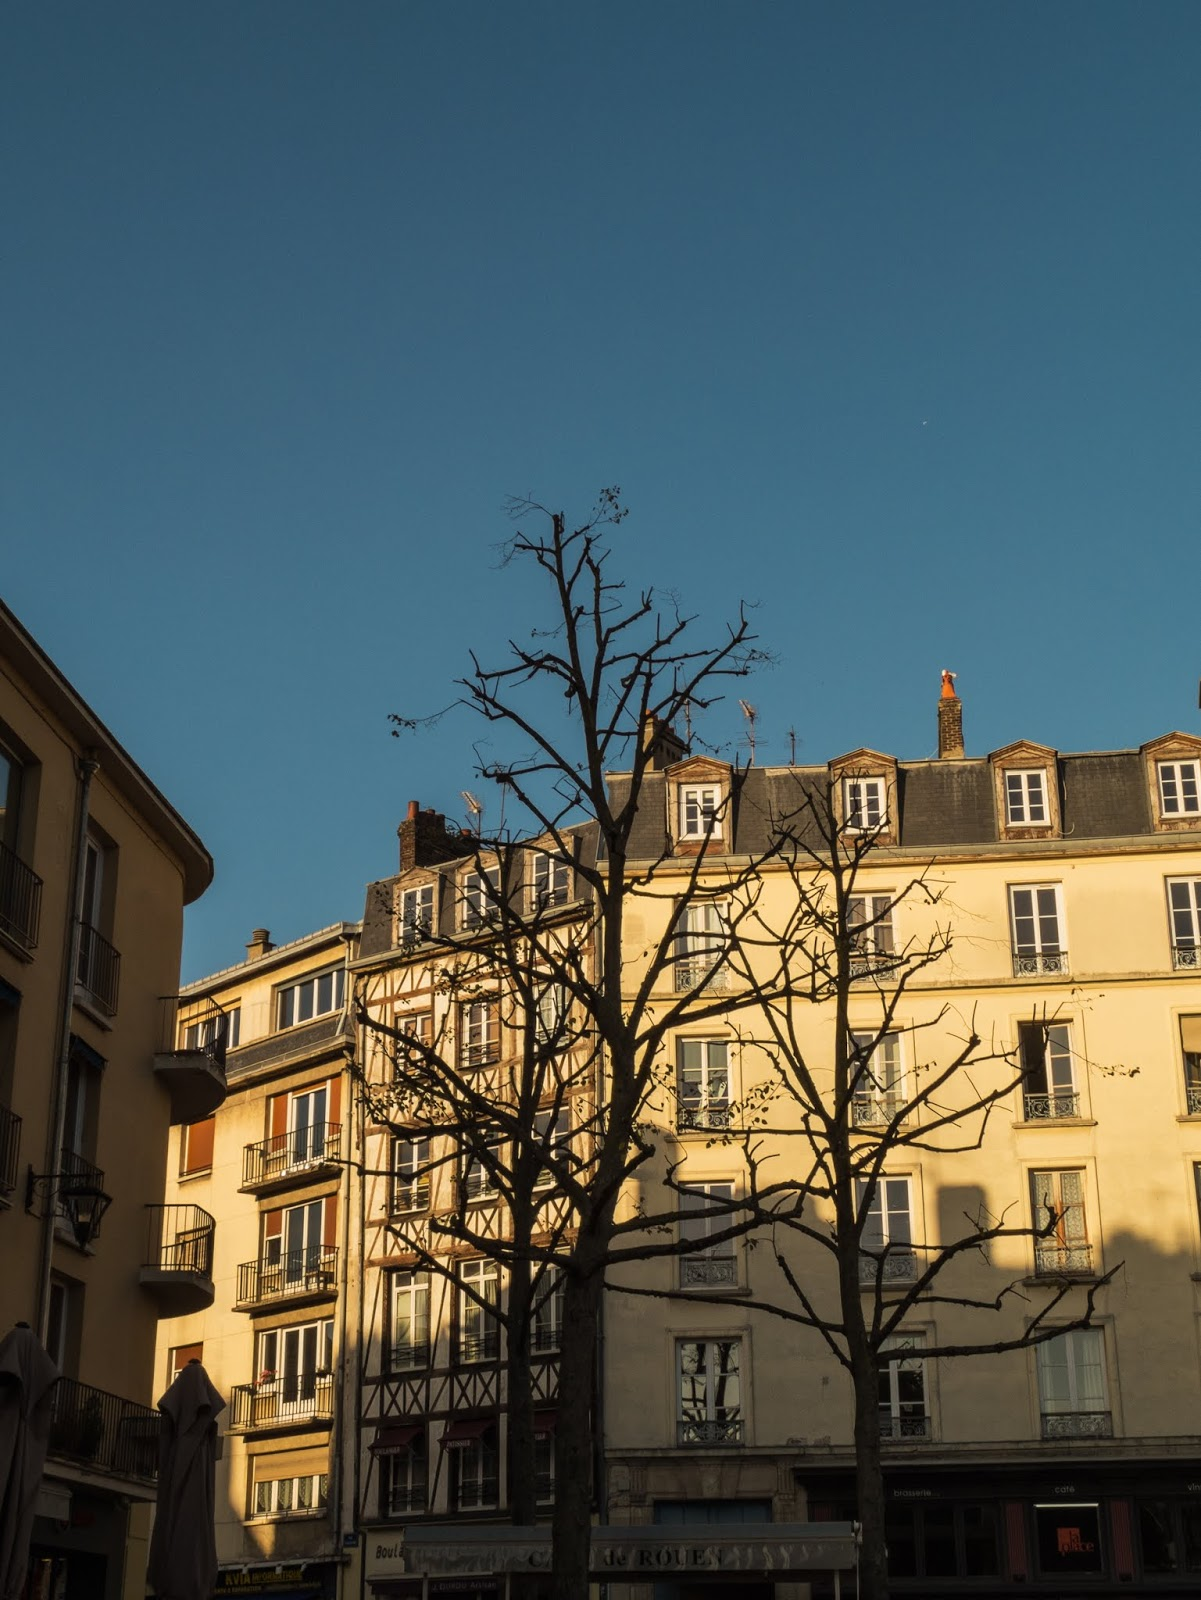 A bare tree in front of a sunlit building in Rouen, France.